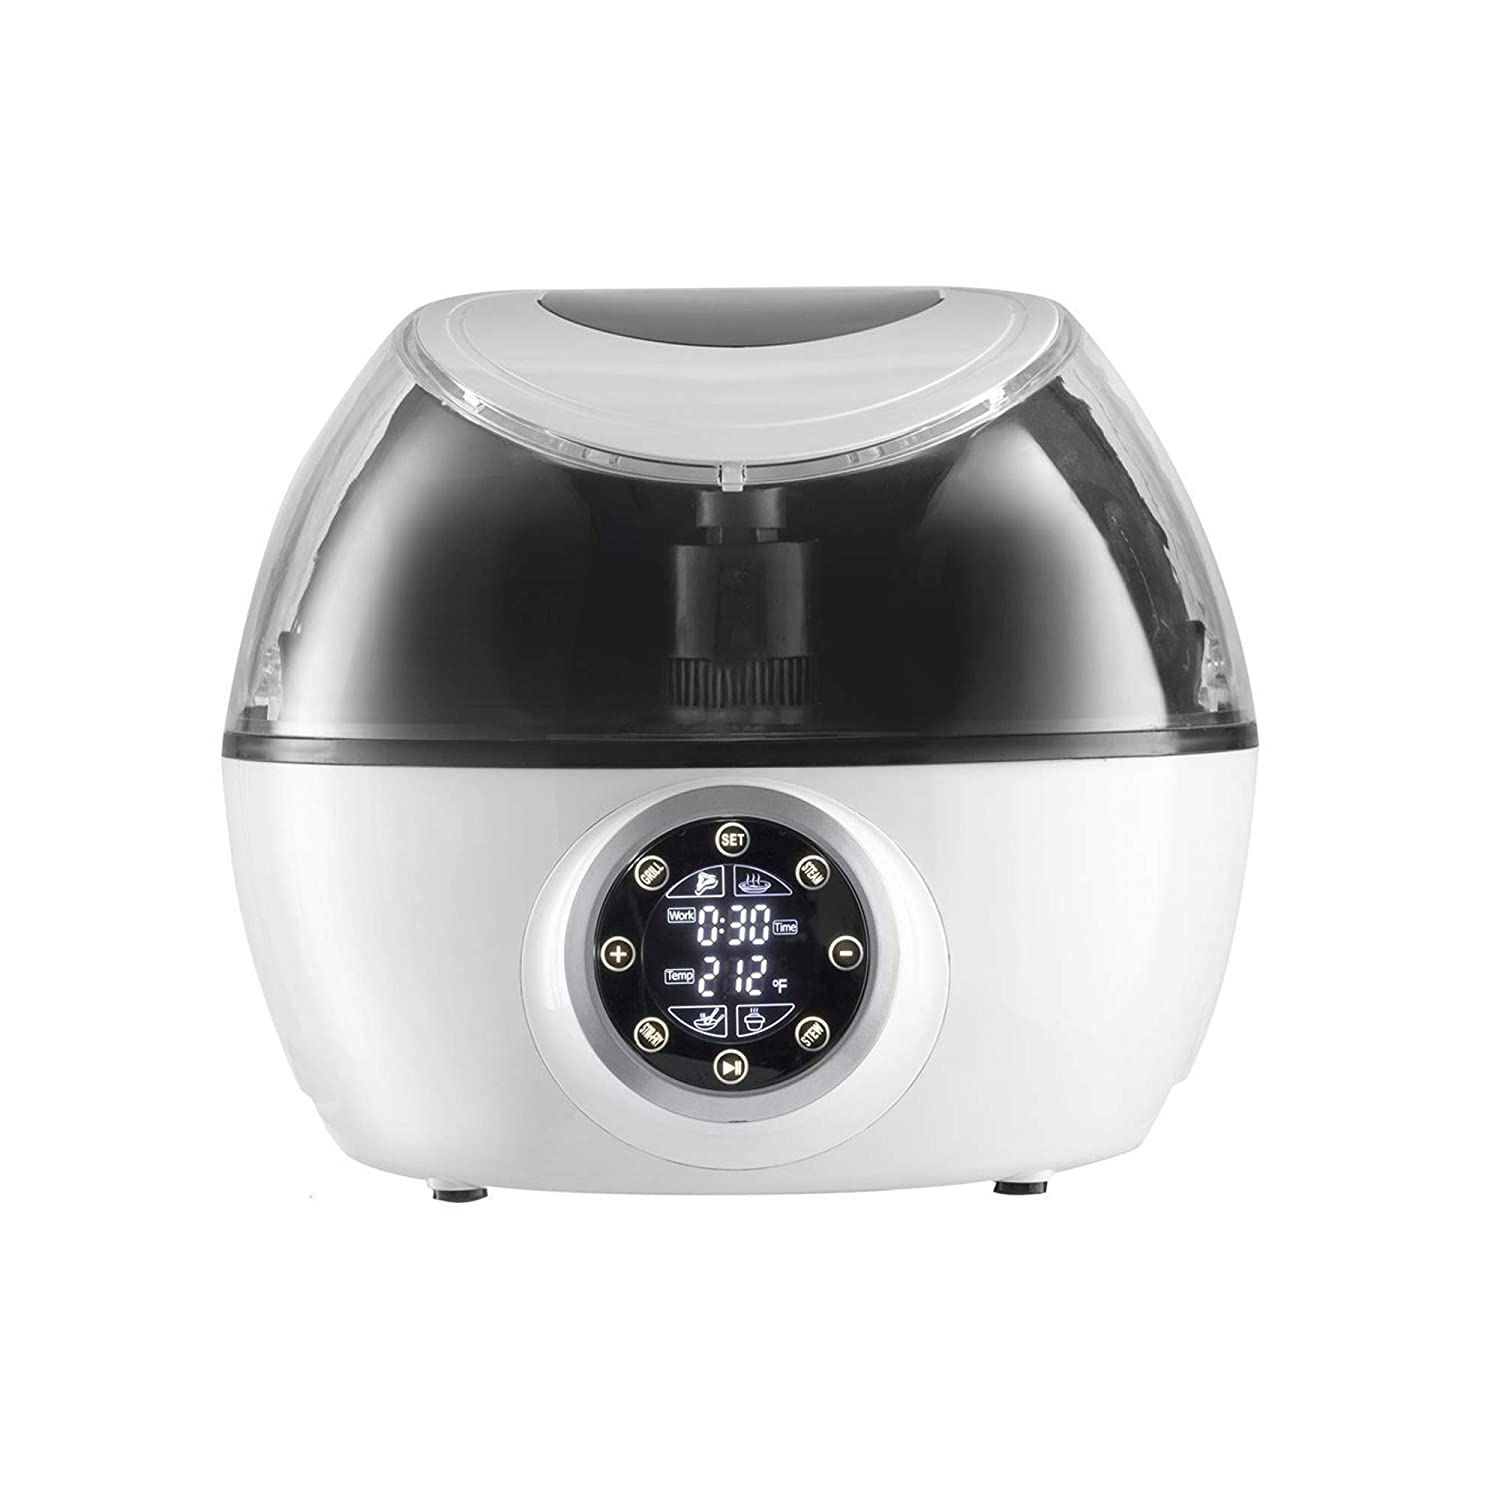 Gourmia GCR-1700 10-in-1 Programmable Multi Cooker with Exclusive Robotic Hands Free Stirrer (Third Generation), White